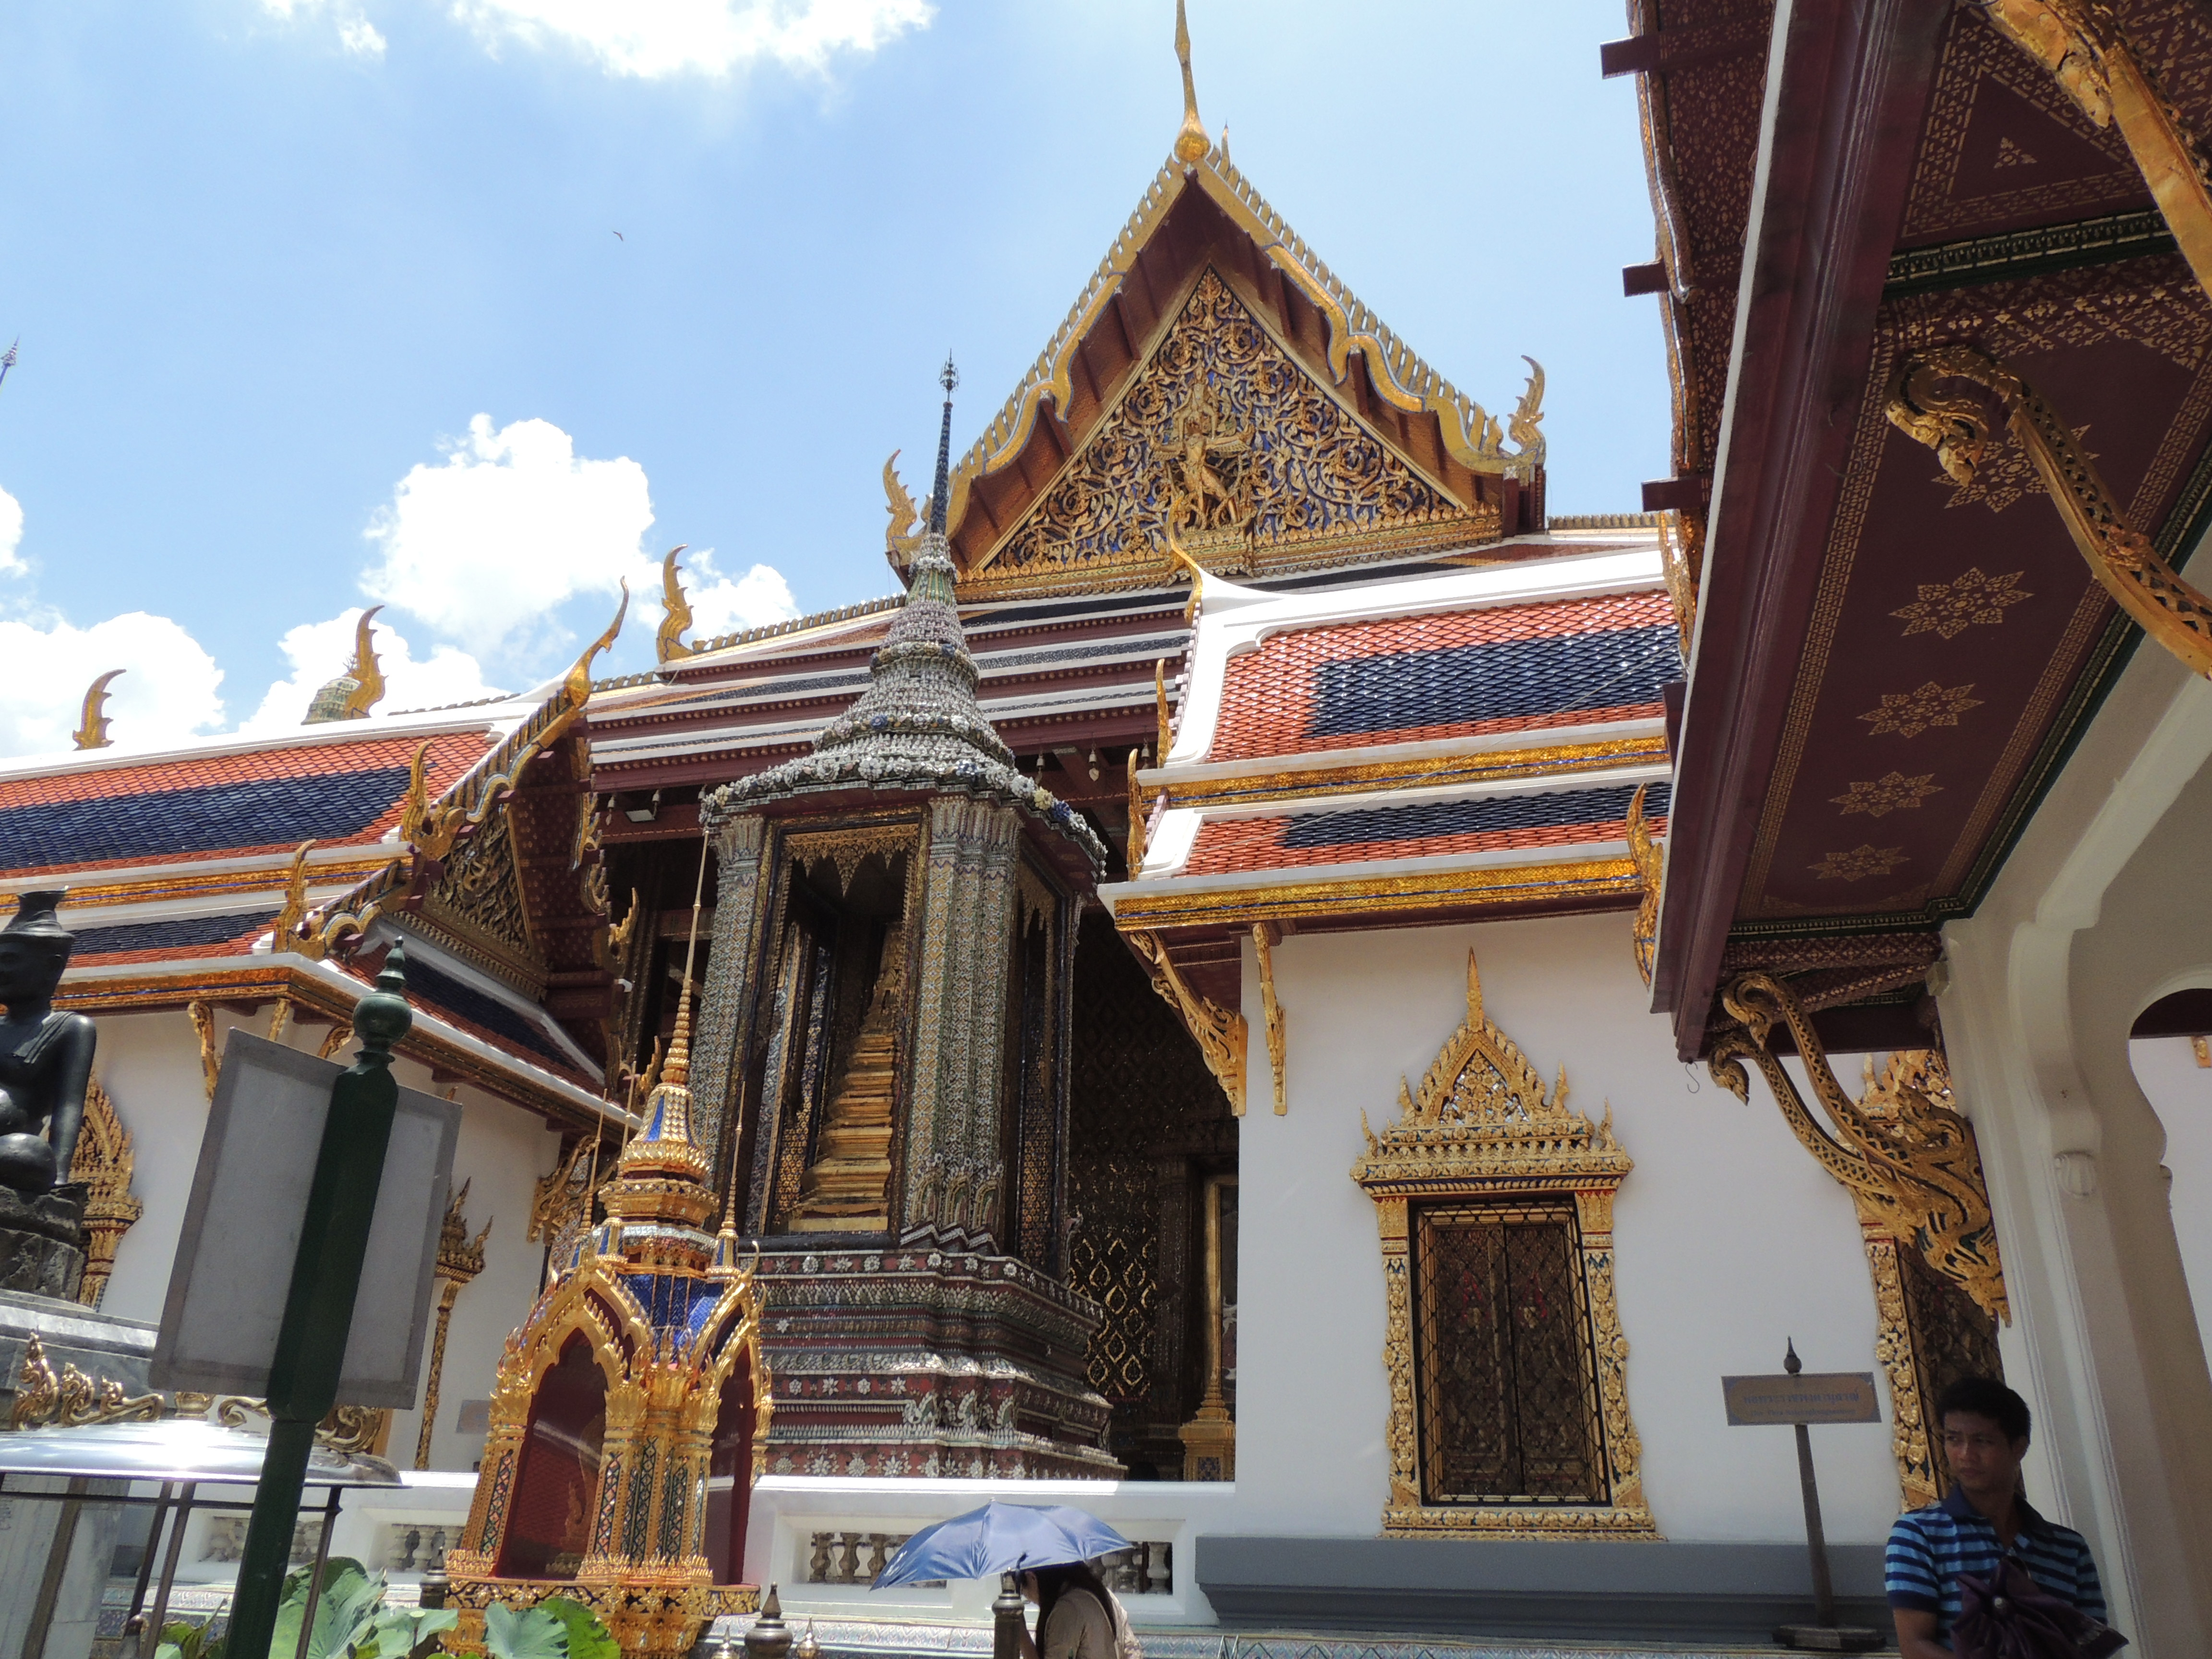 Entrance to the SHrine of the Emerald Buddha